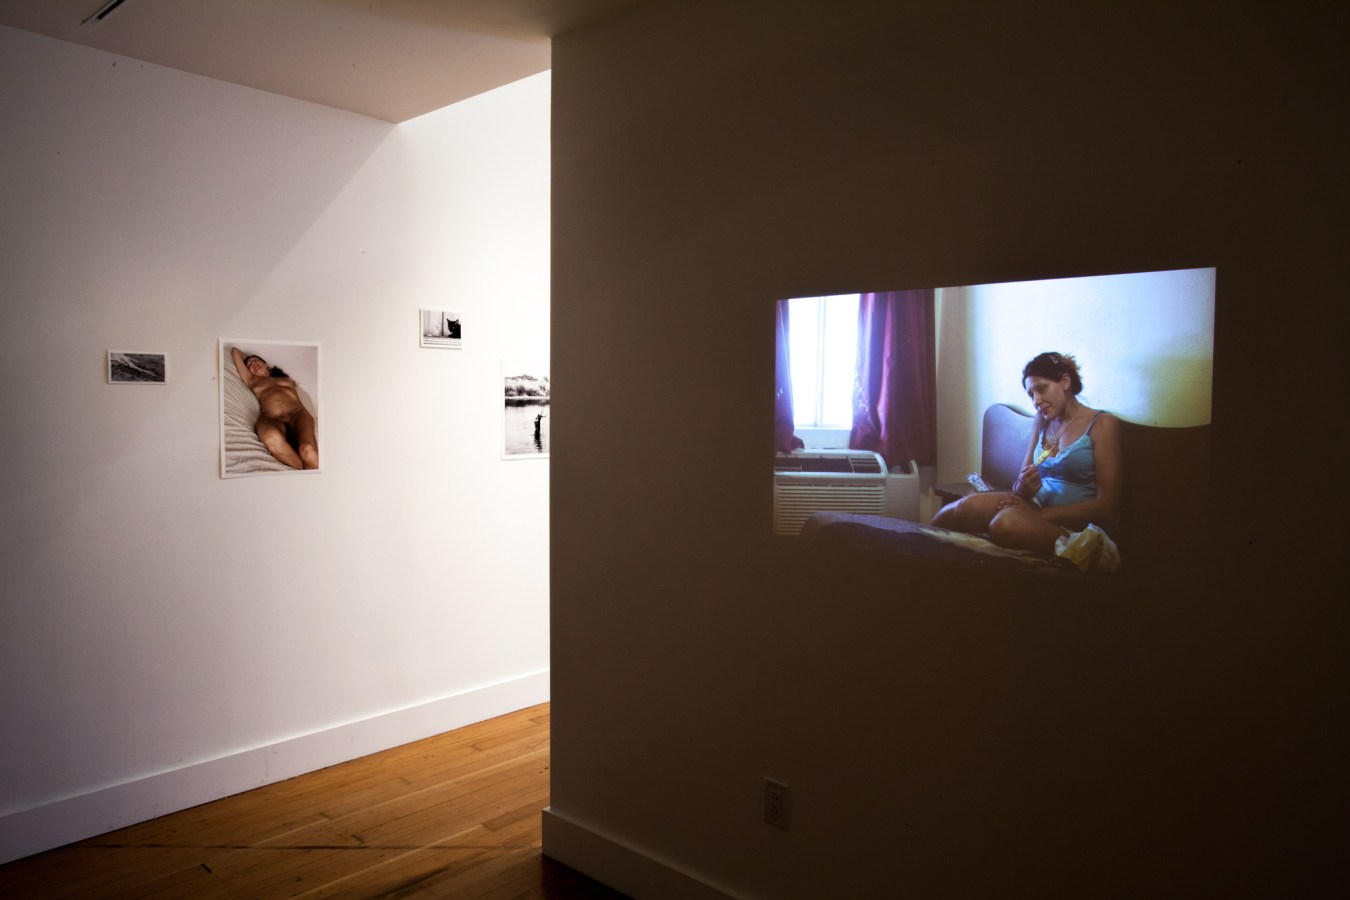 Installation photograph of a gallery space with small unframed prints on the walls and a video projected on one